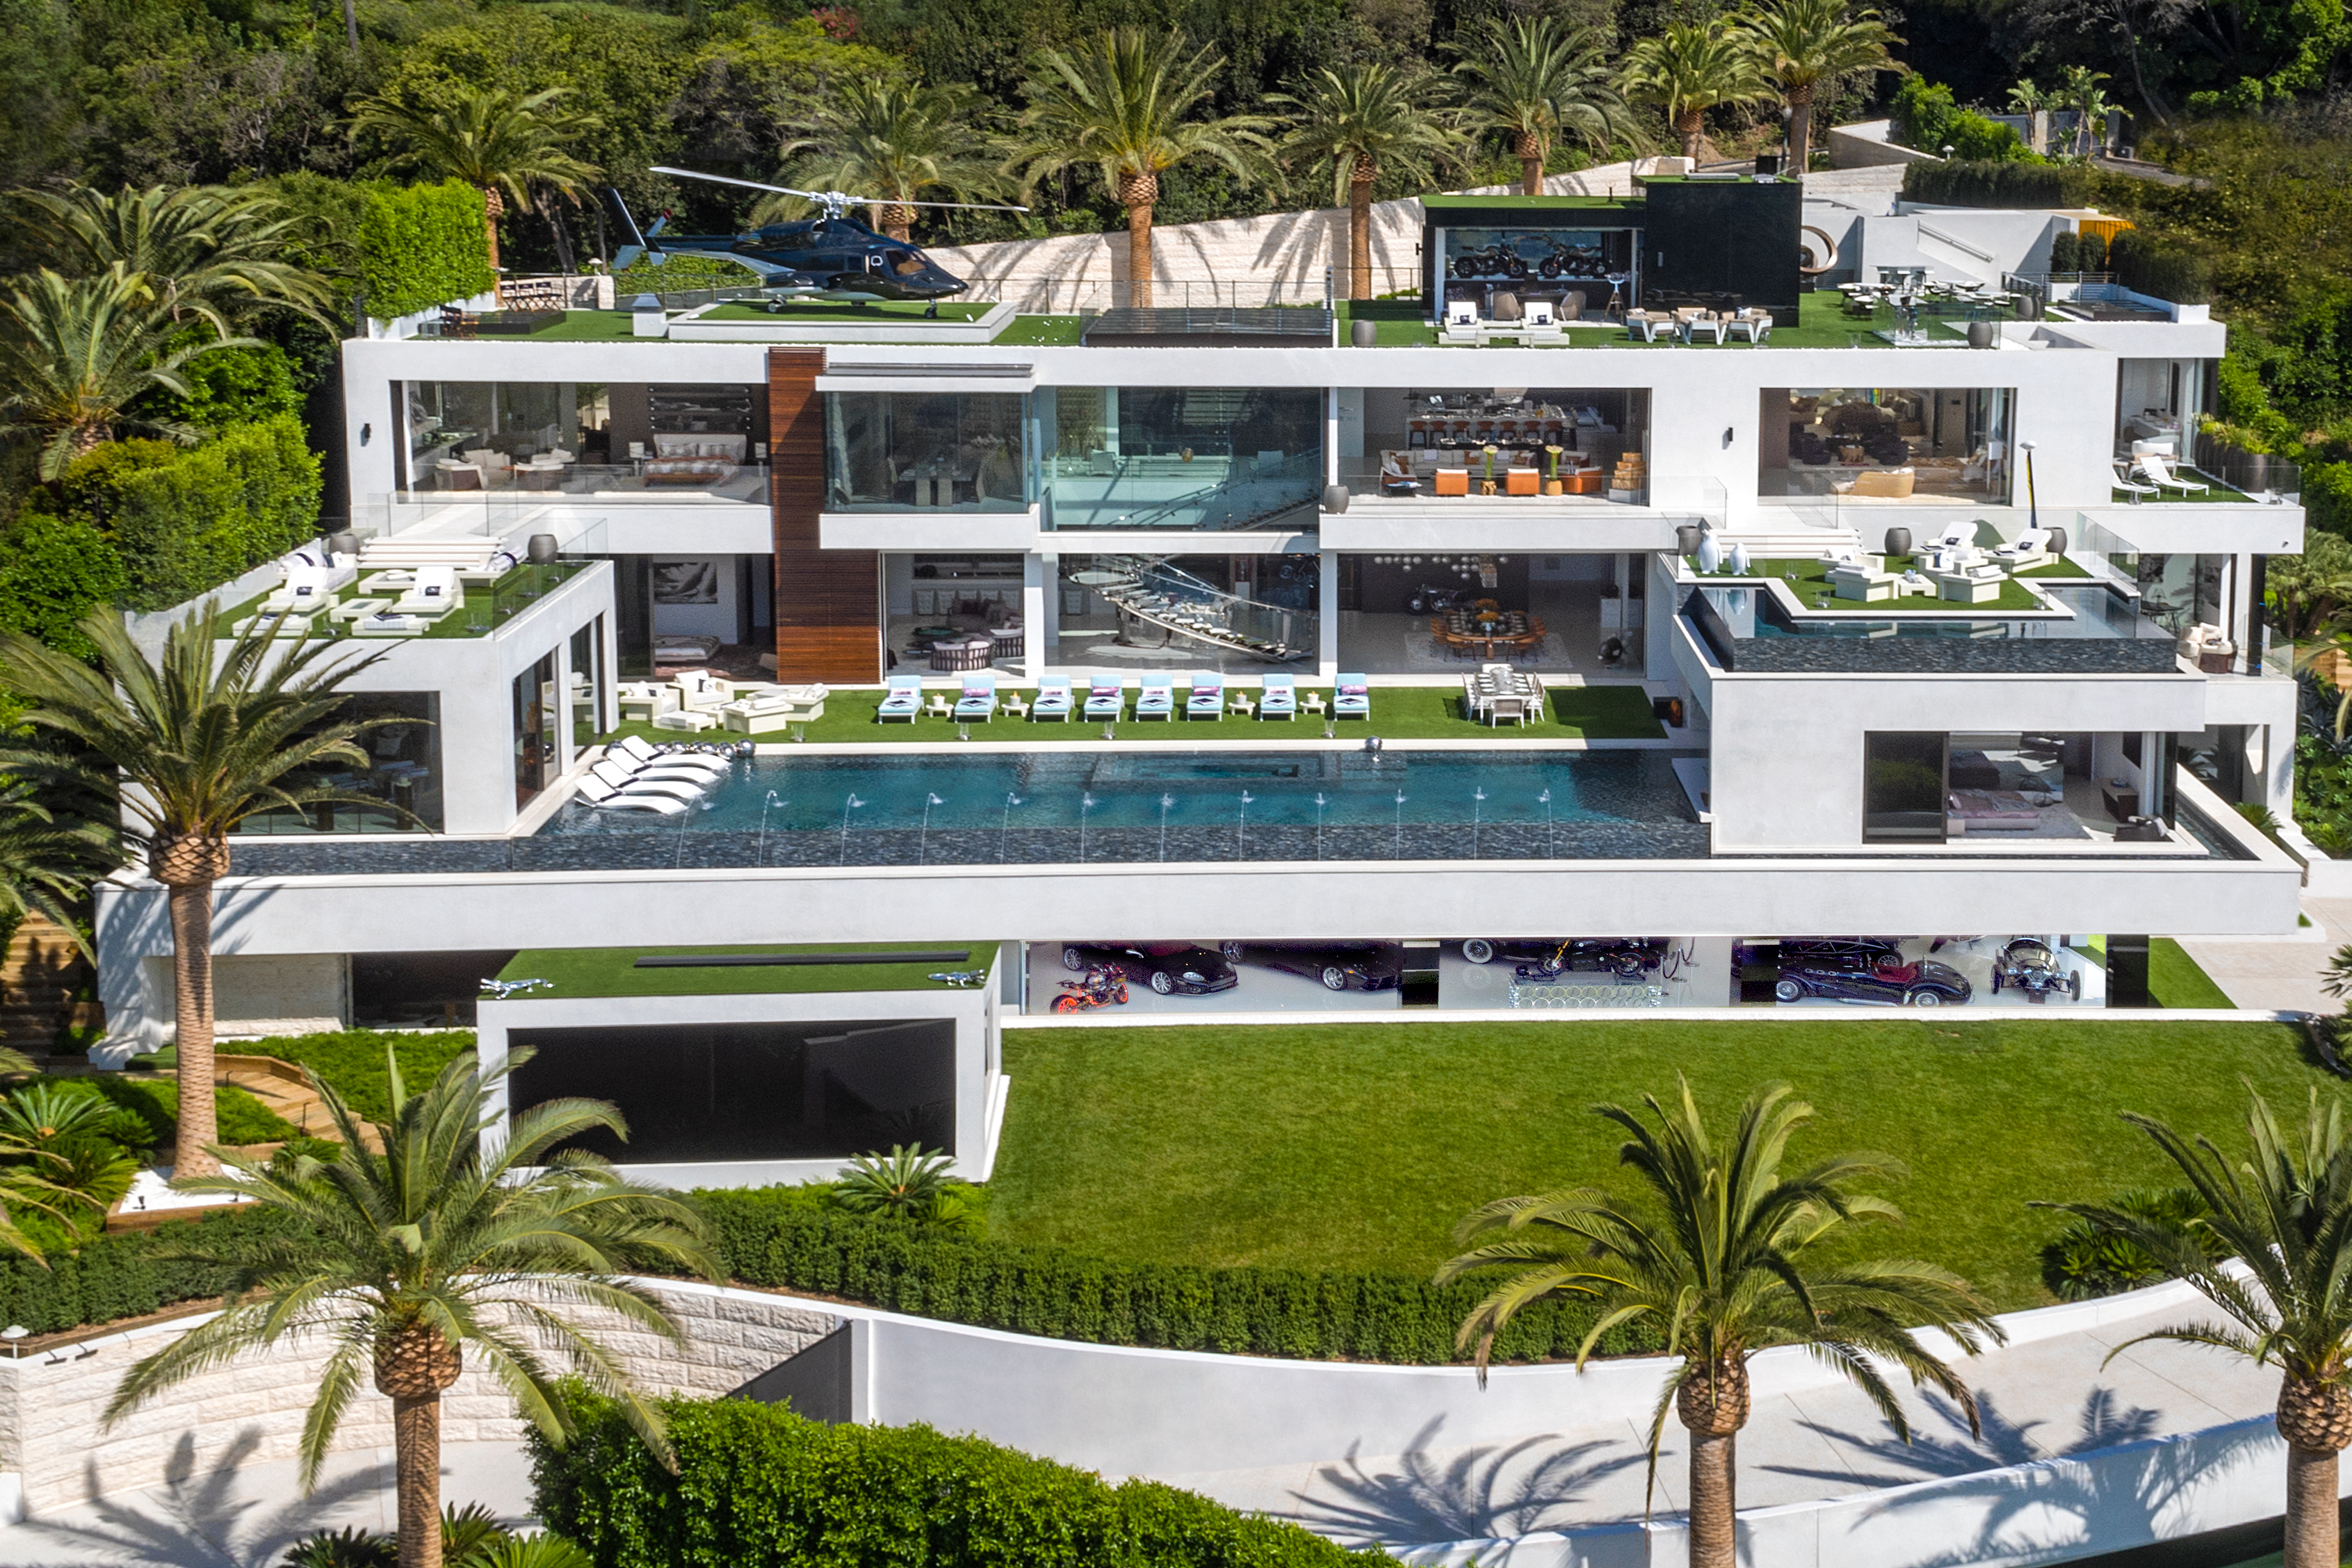 These Are 10 Of The Most Expensive Houses In The U.S. +#refinery29